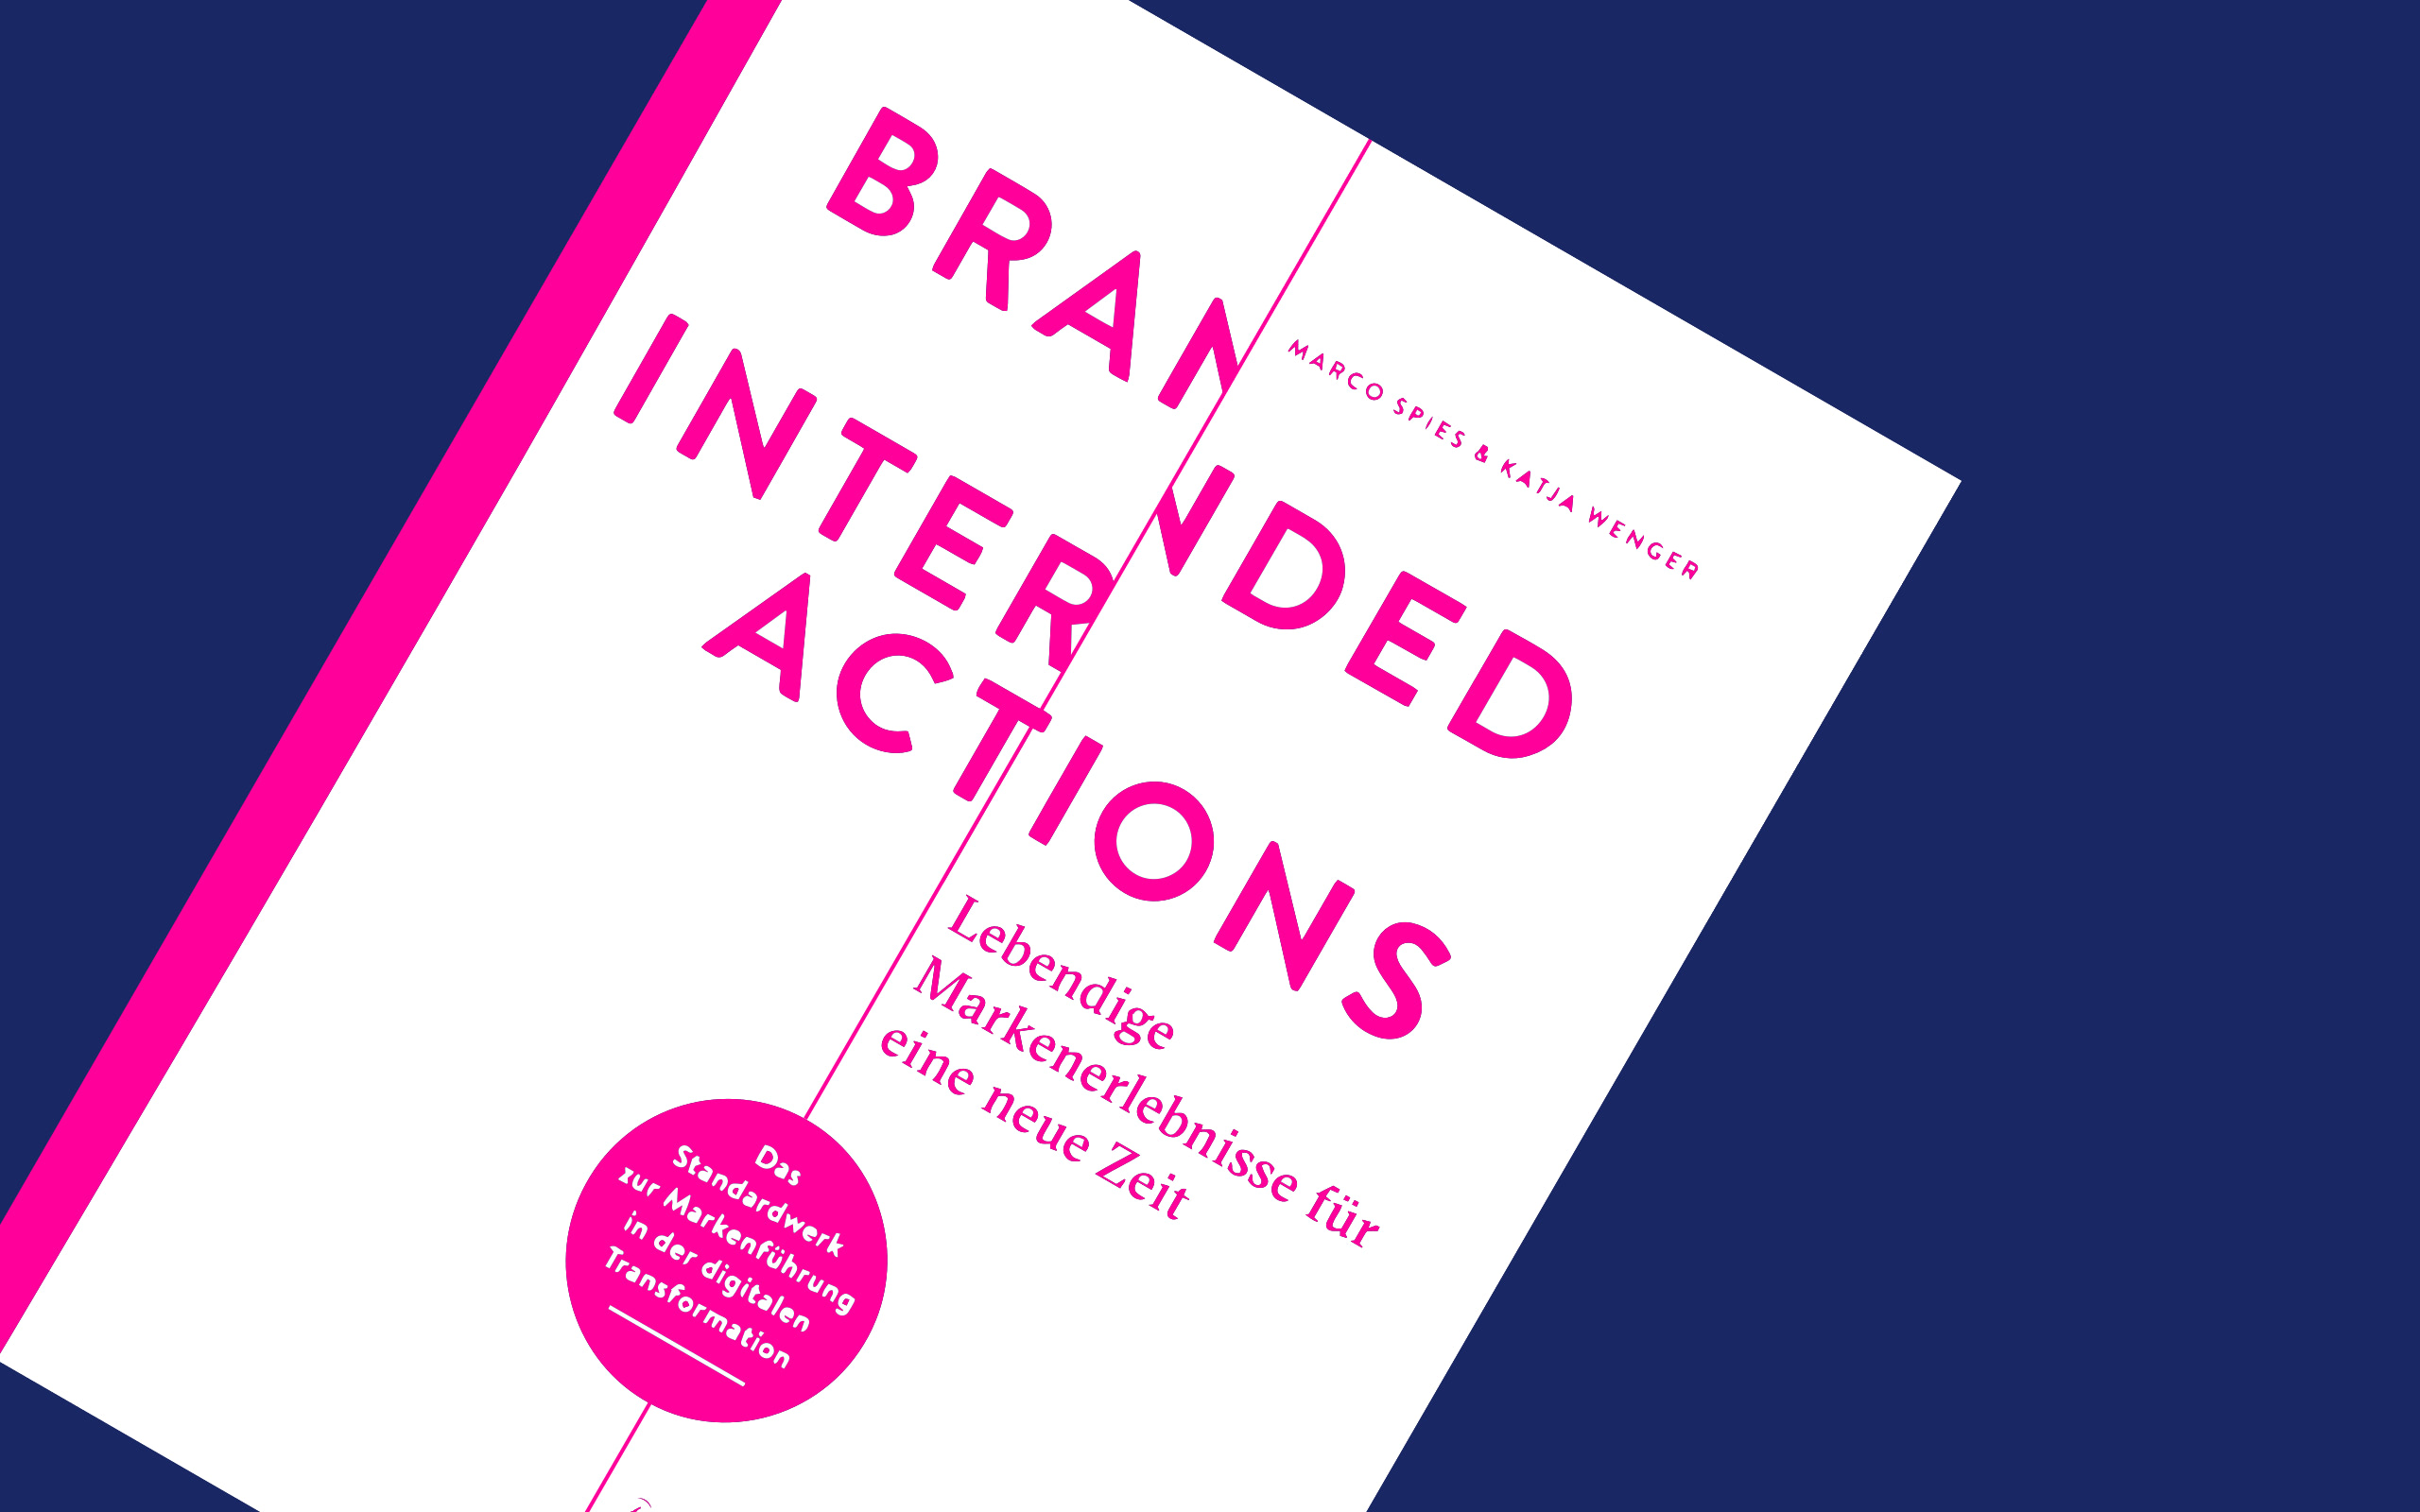 <strong>Sydney's Buchtipp aus der Eyekon-Bibliothek:</strong> Branded Interactions – Creating The Digital Experience